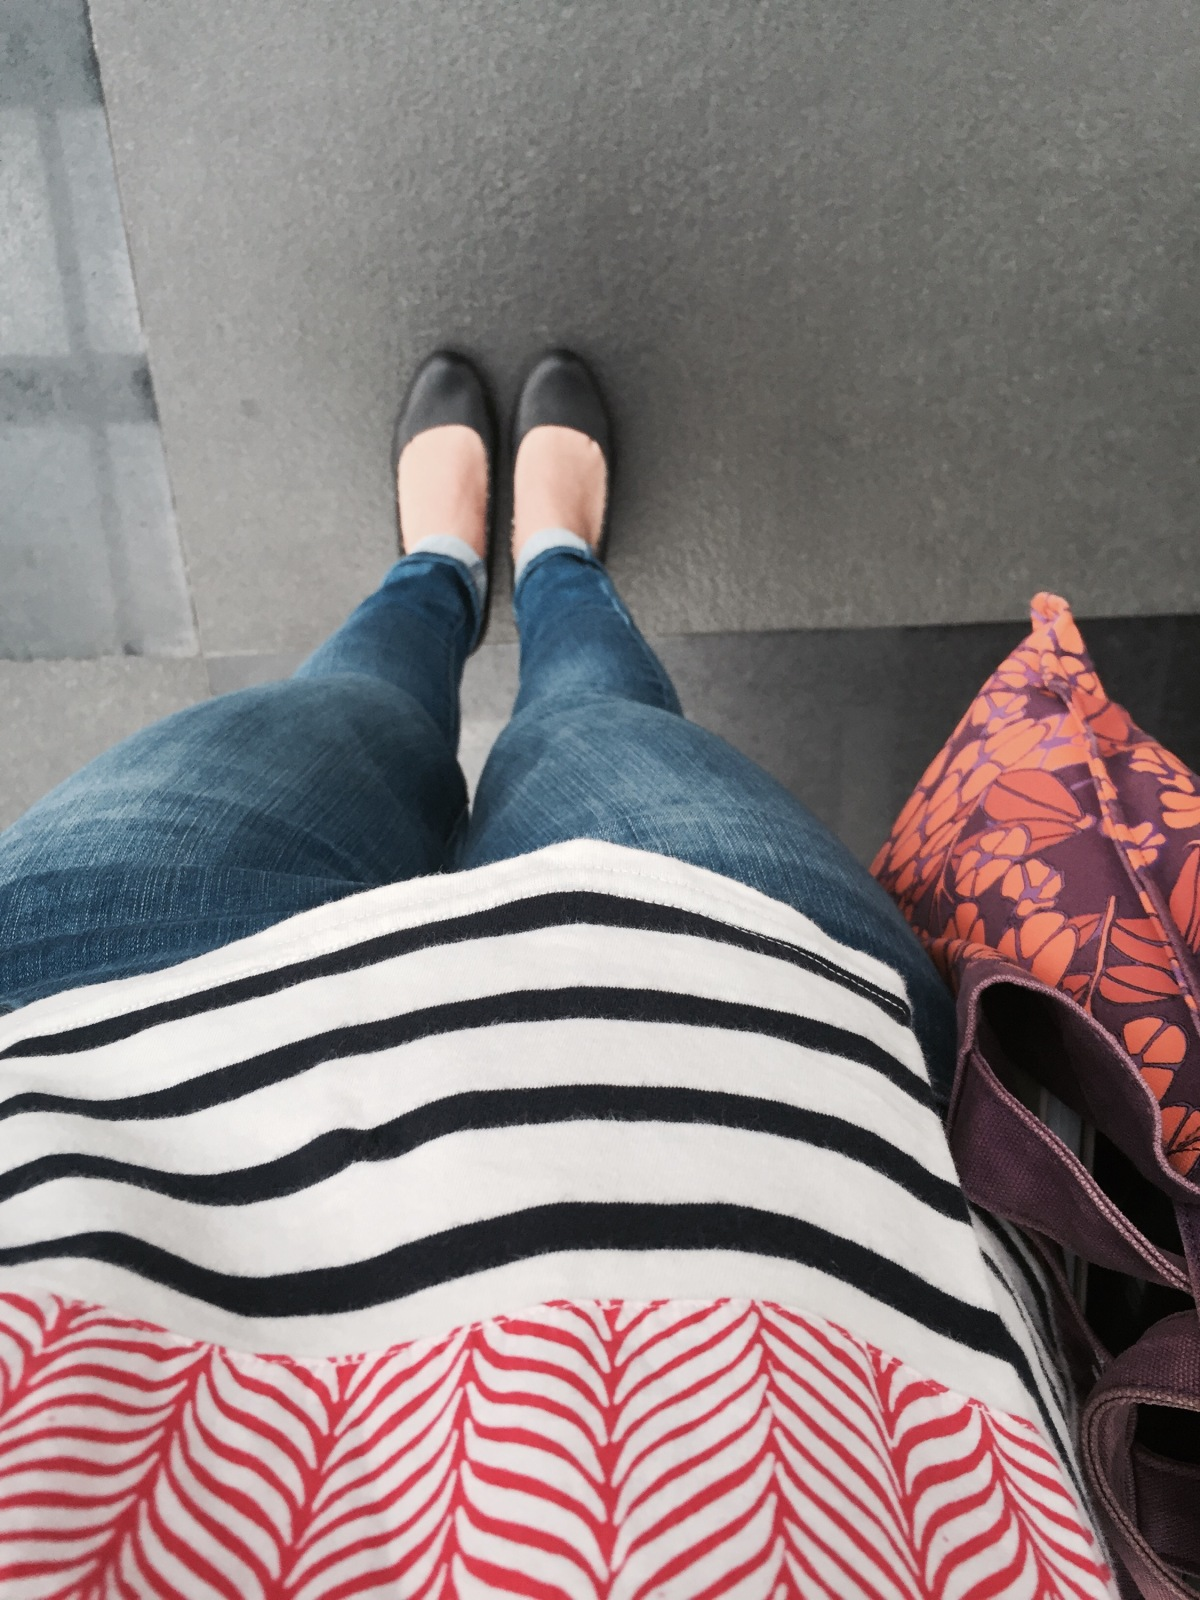 The kind of post that you won't see often – OOTD!